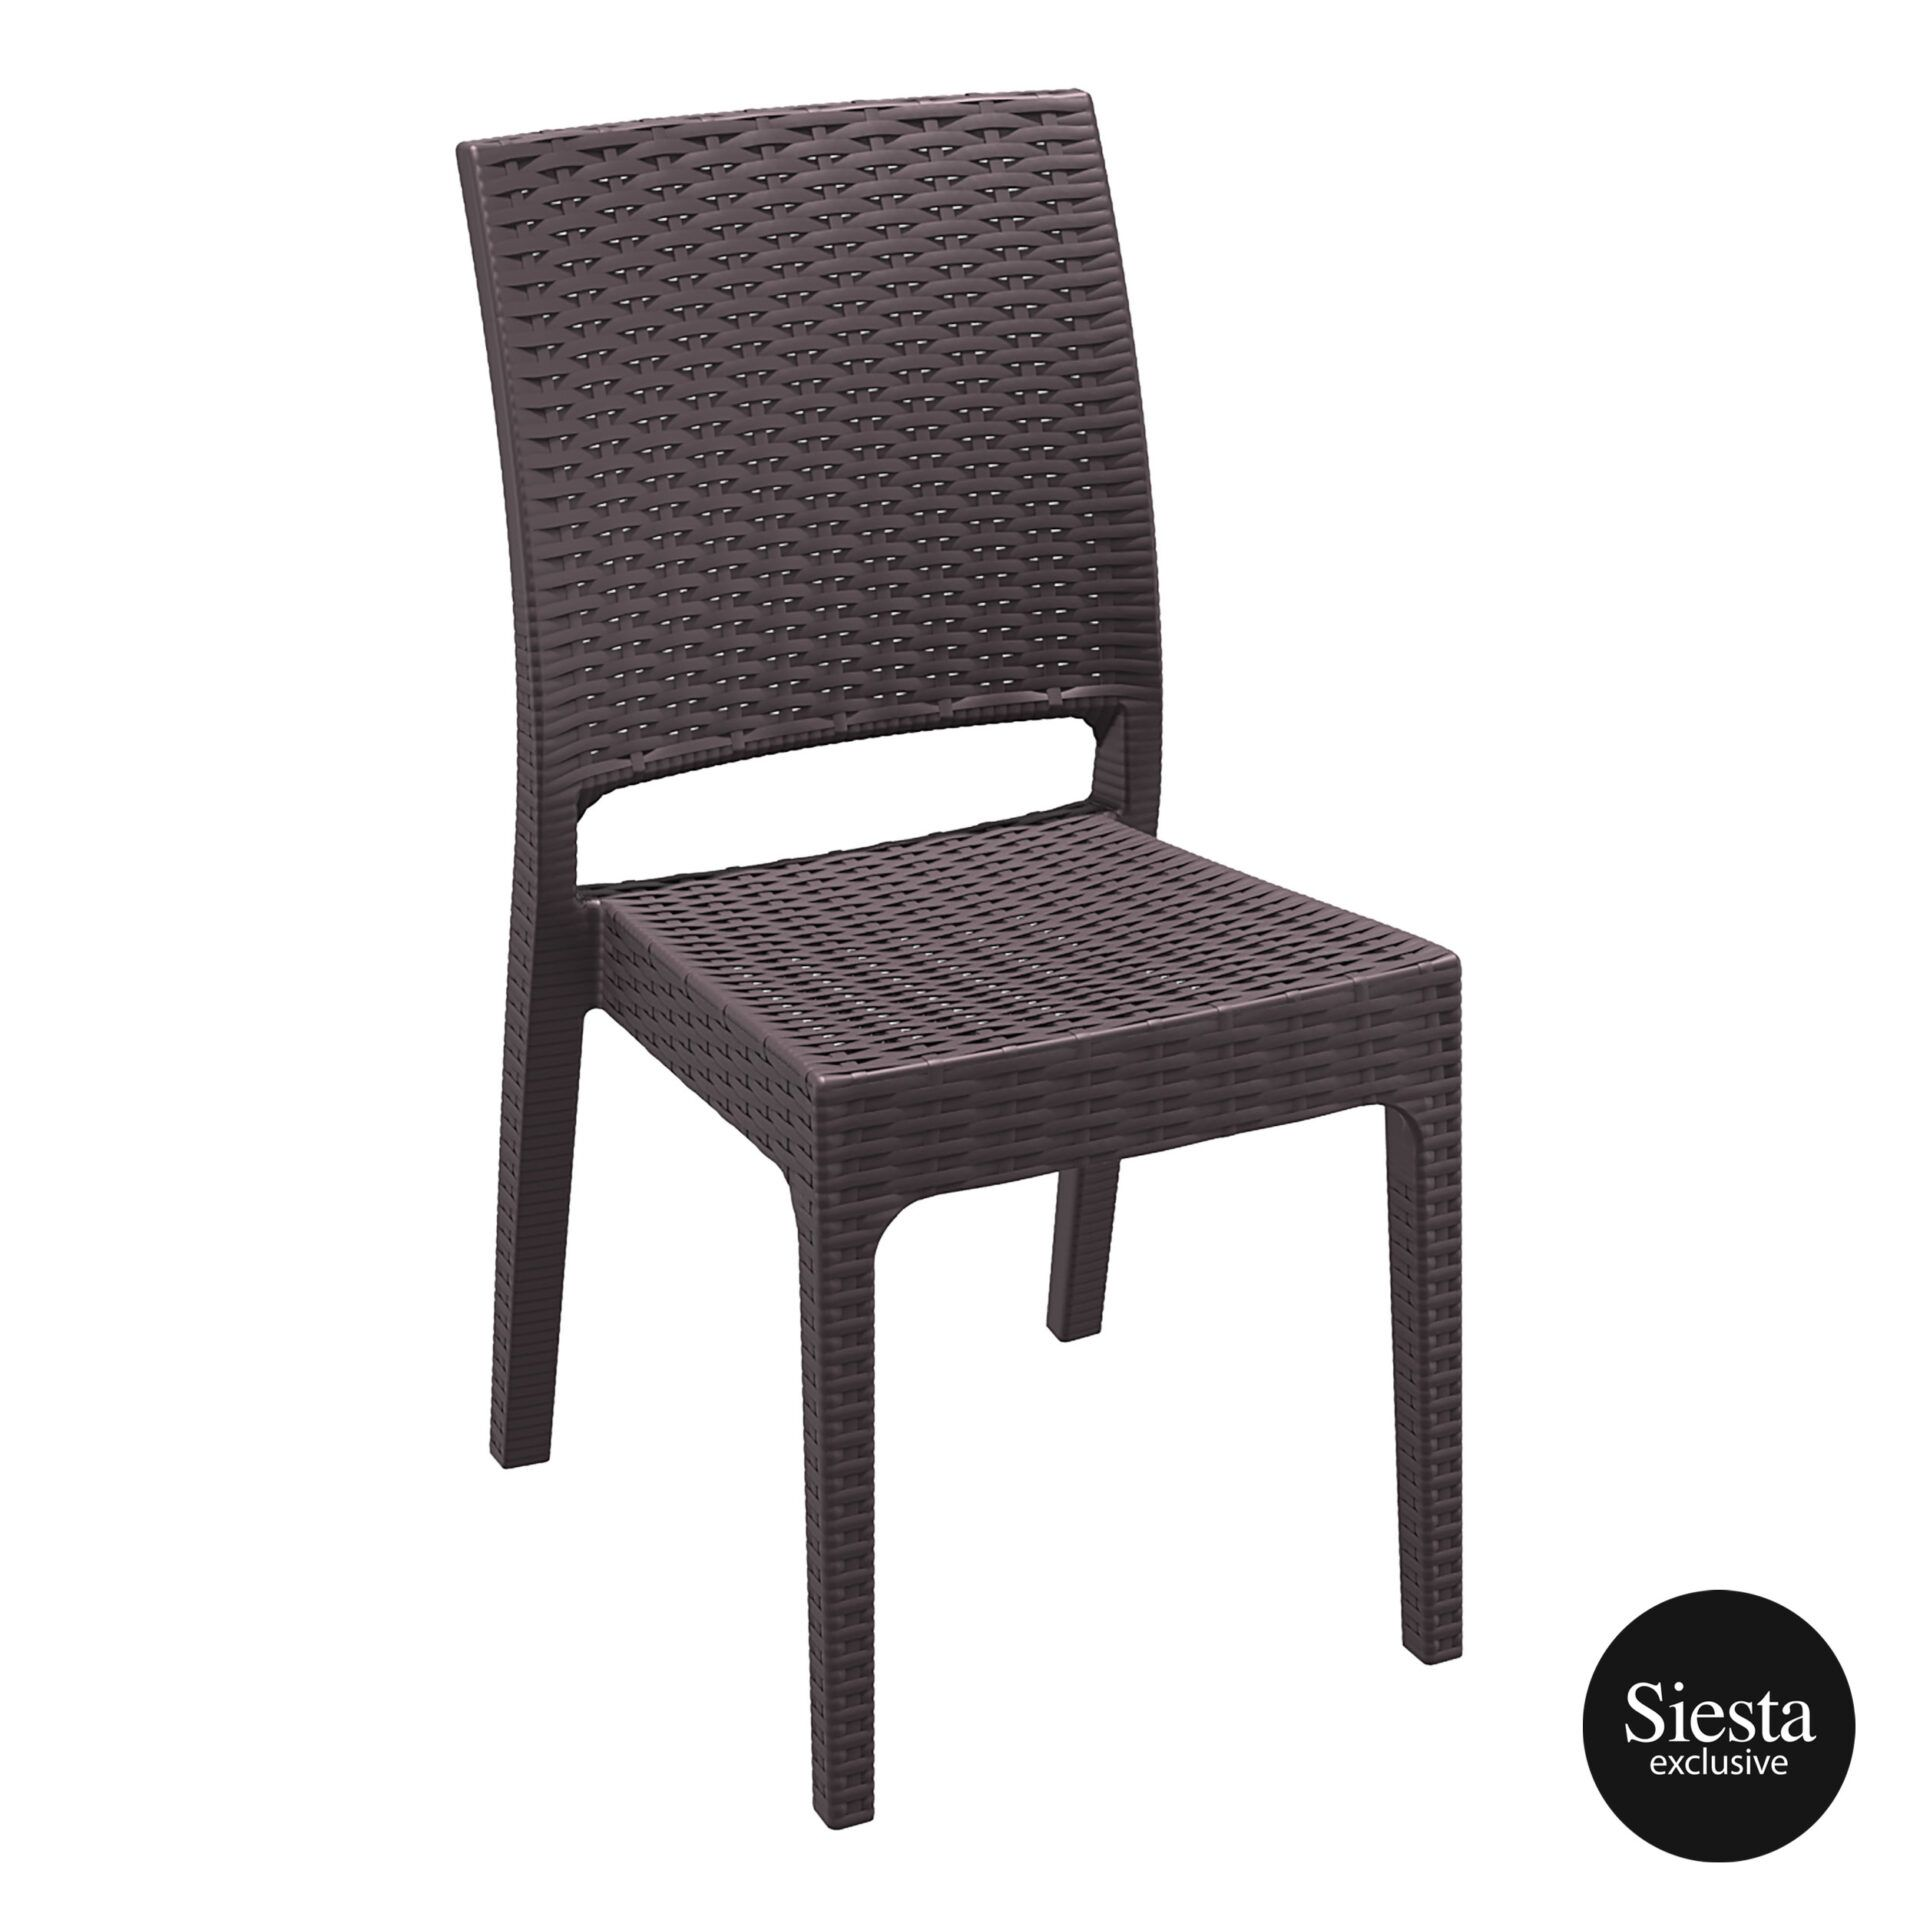 resin rattan dining florida chair brown front side 1